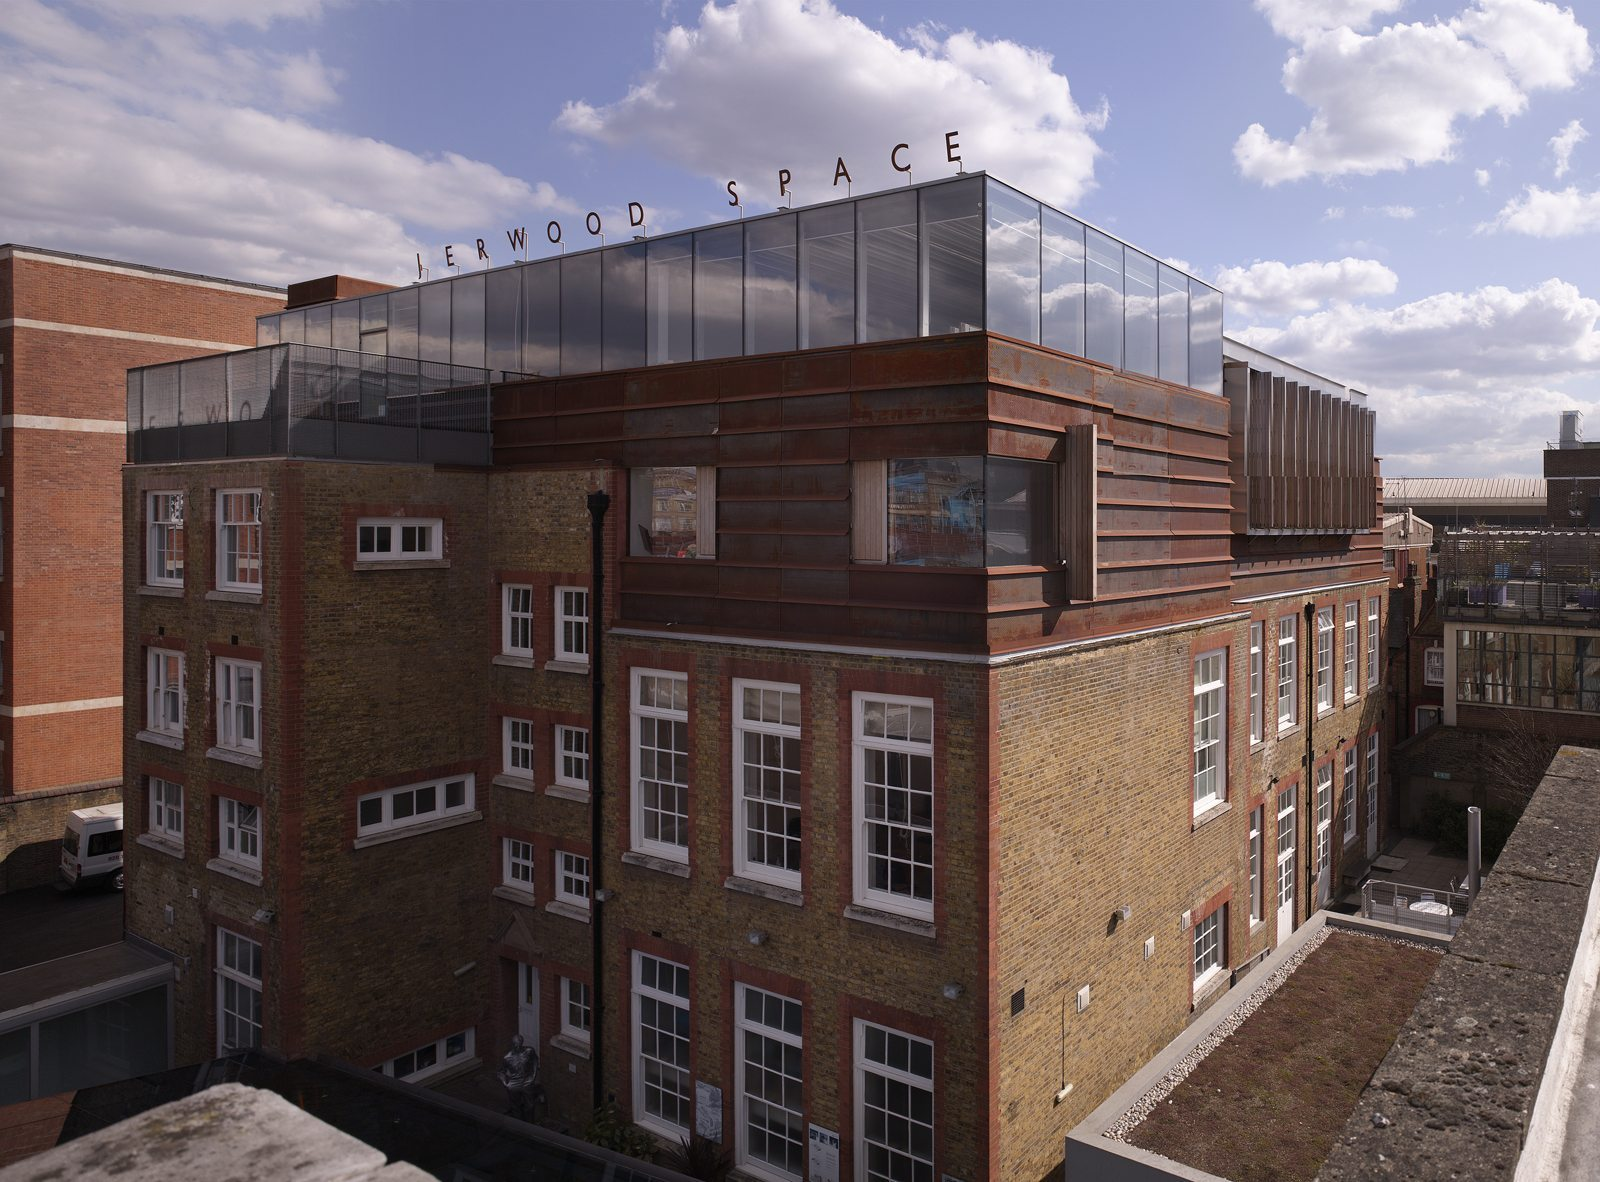 Jerwood Space, Southwark, London